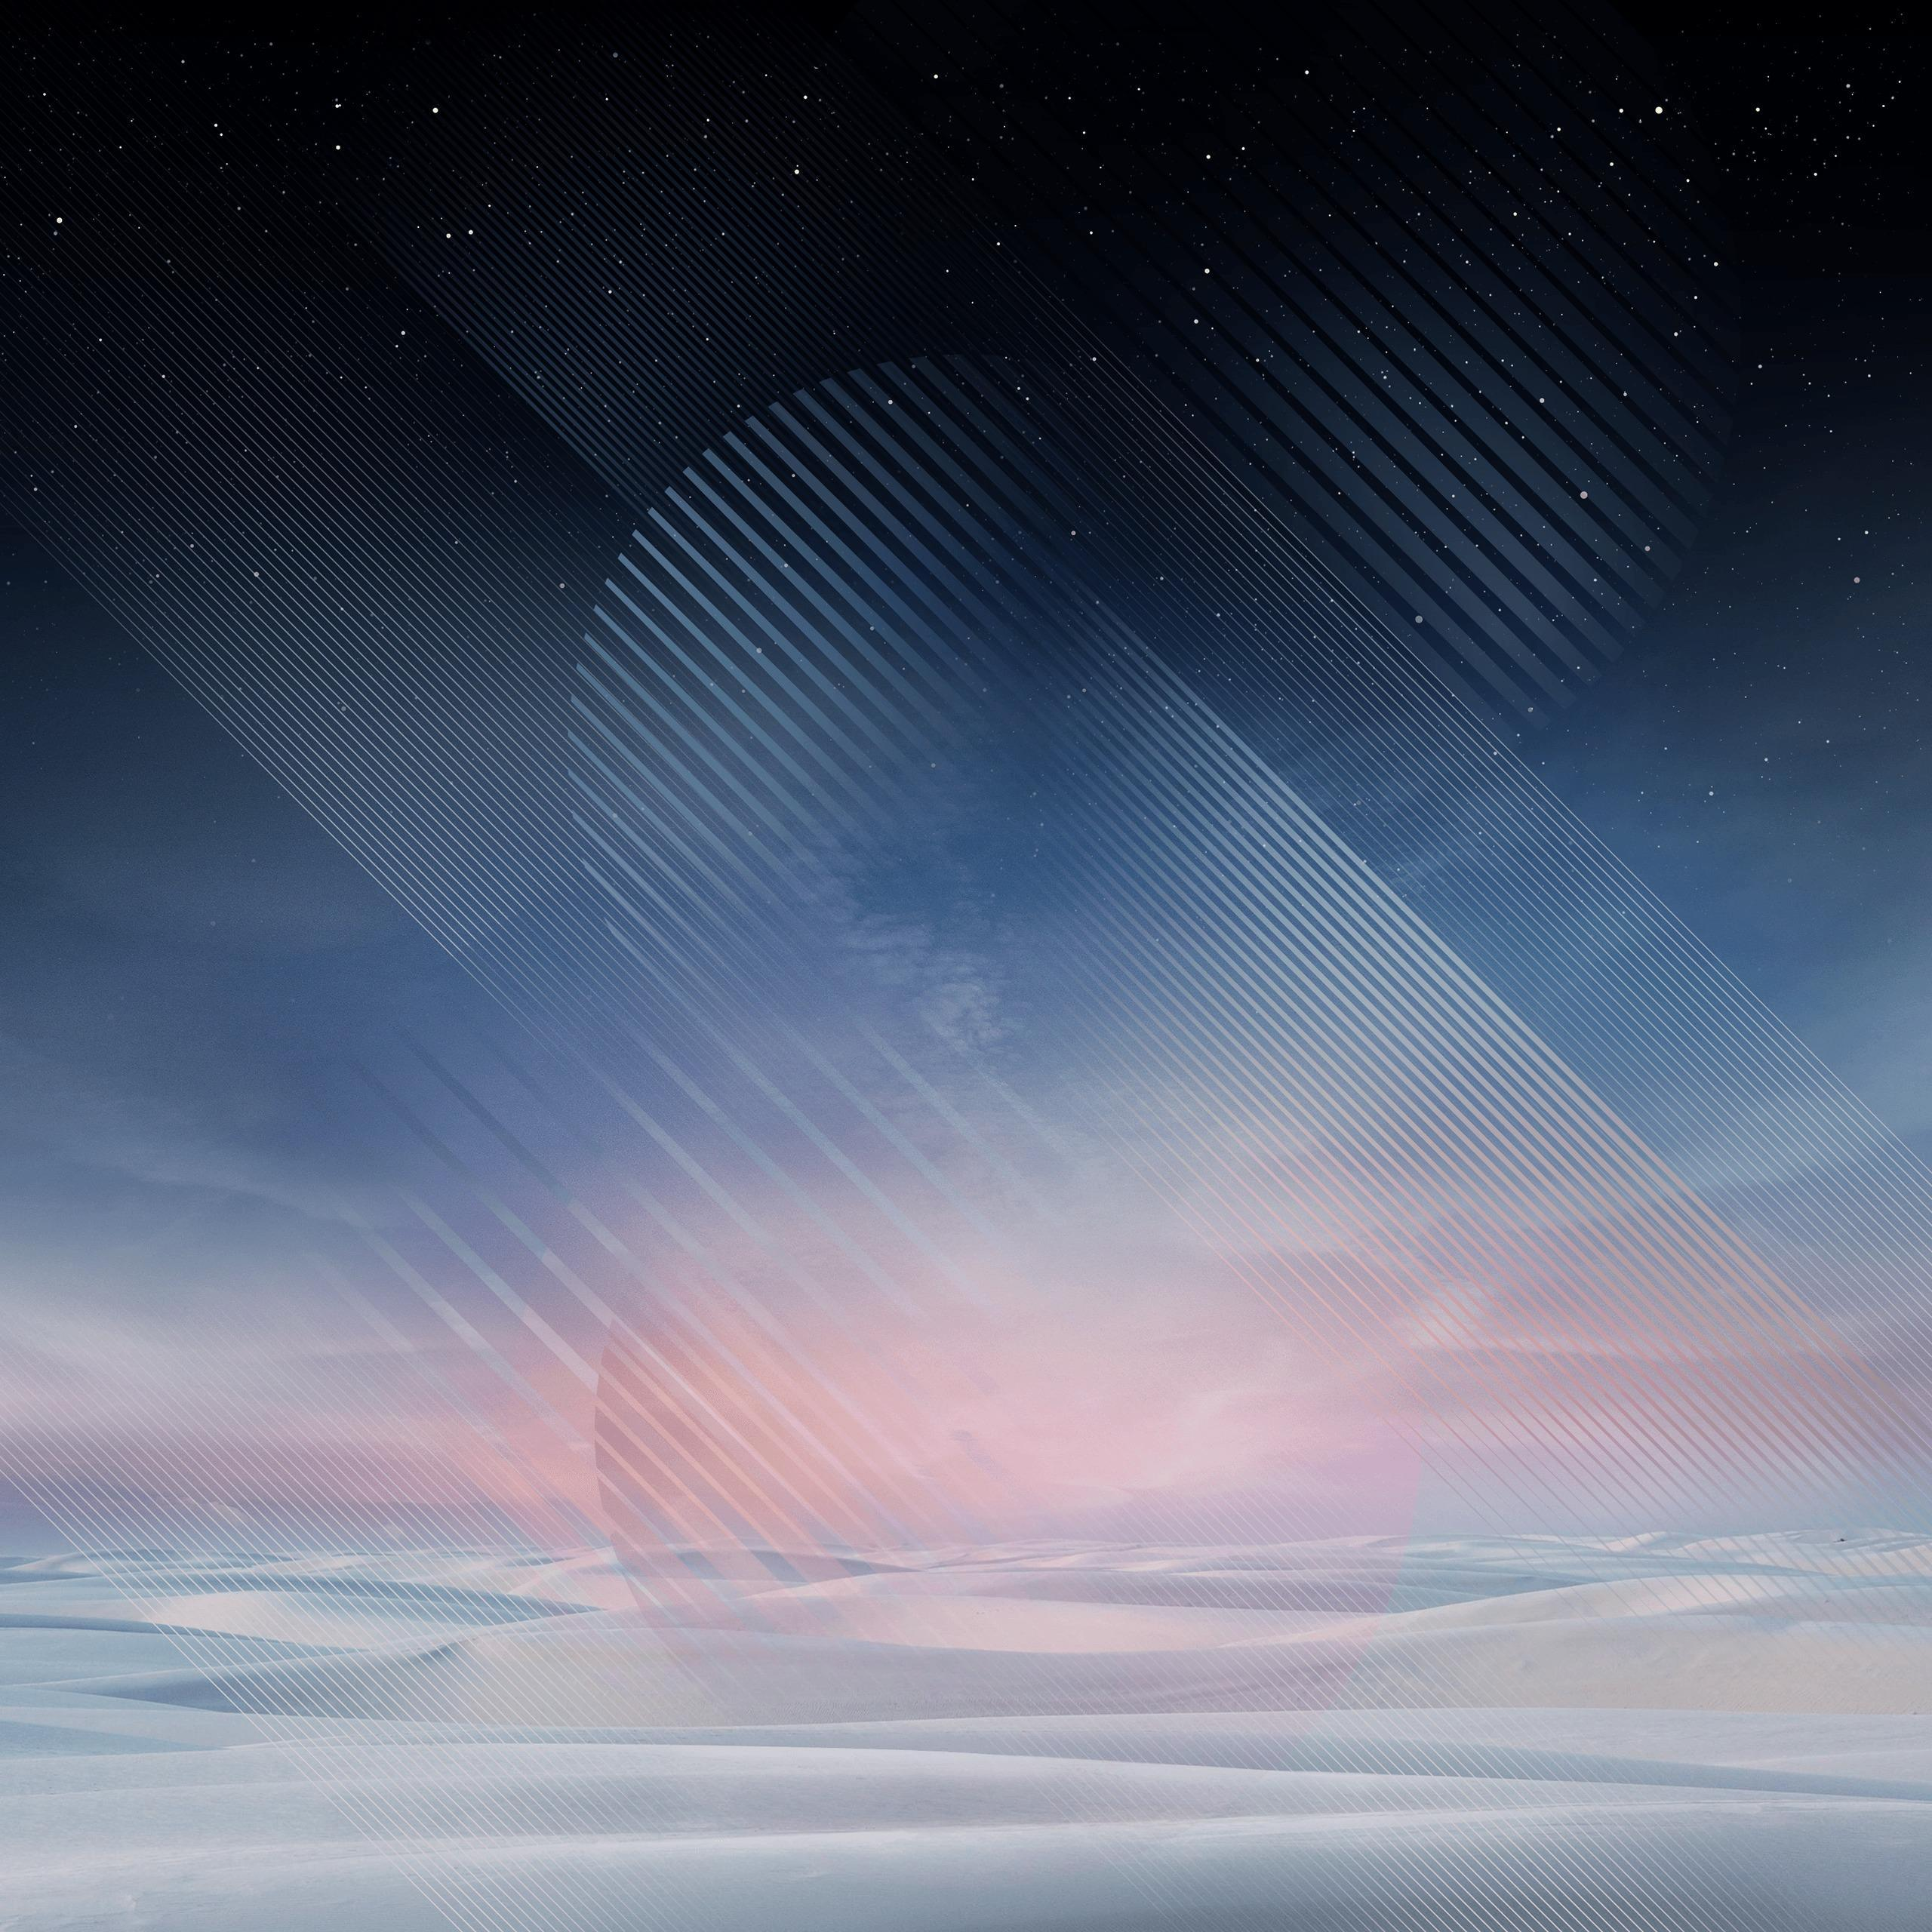 Galaxy Note 8 Wallpapers For Android Apk Download